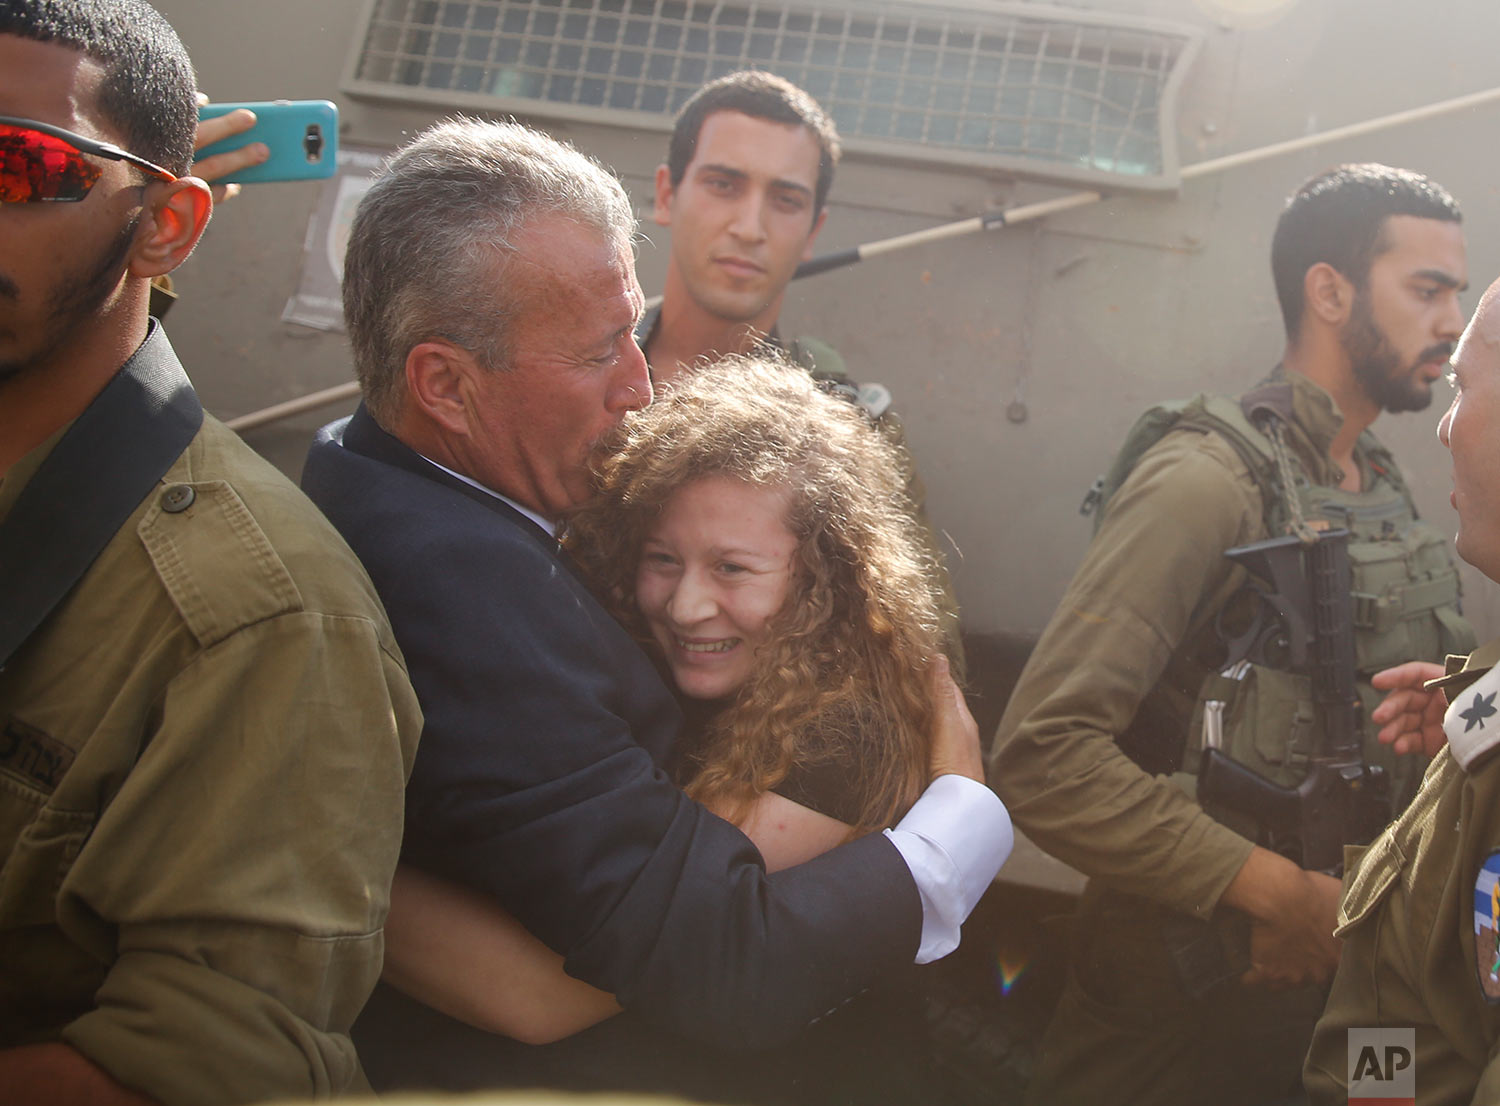 Ahed Tamimi is hugged by her father Bassem as she is released by the Israeli army Israeli prison after serving an eight month sentence at the entrance of her village of Nebi Saleh in the West Bank Sunday, July 29, 2018. (AP Photo/Nasser Shiyoukhi)